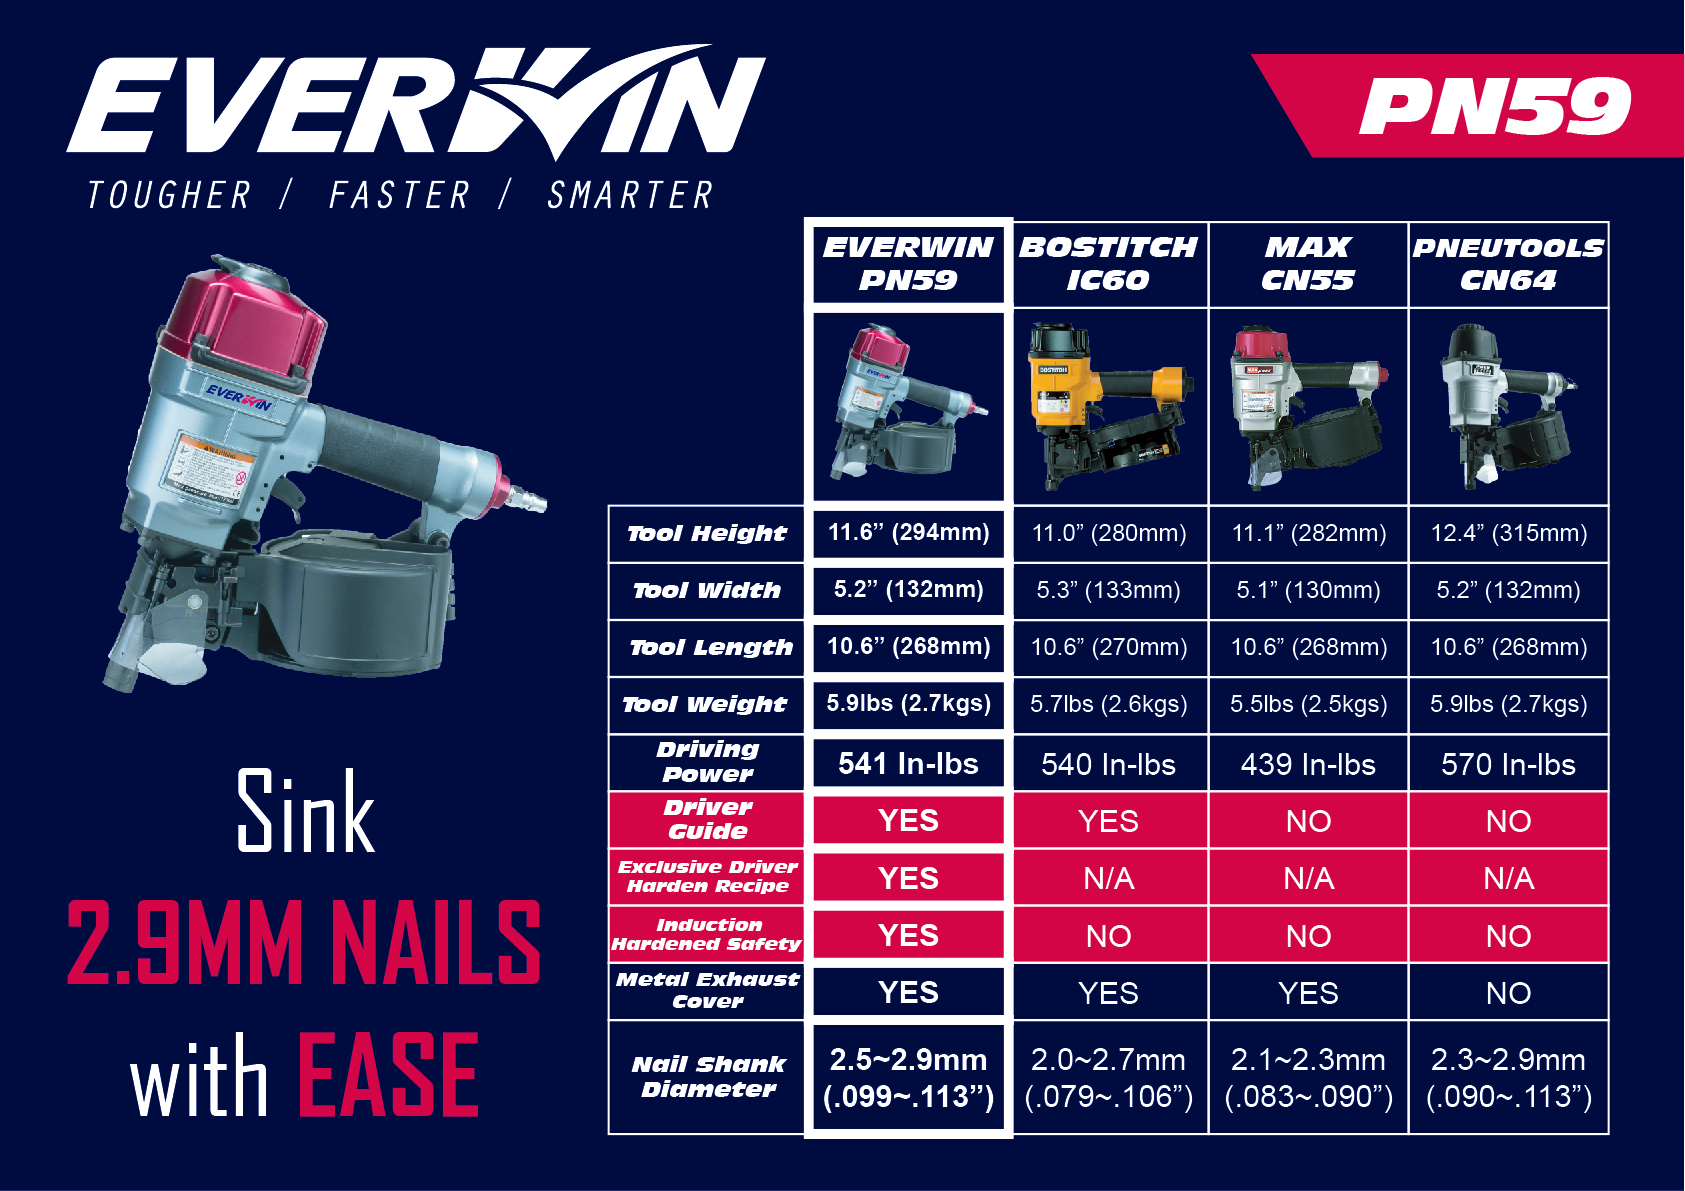 SUPPORT - PRODUCT SUPPORT - Everwin Pneumatic Corp.